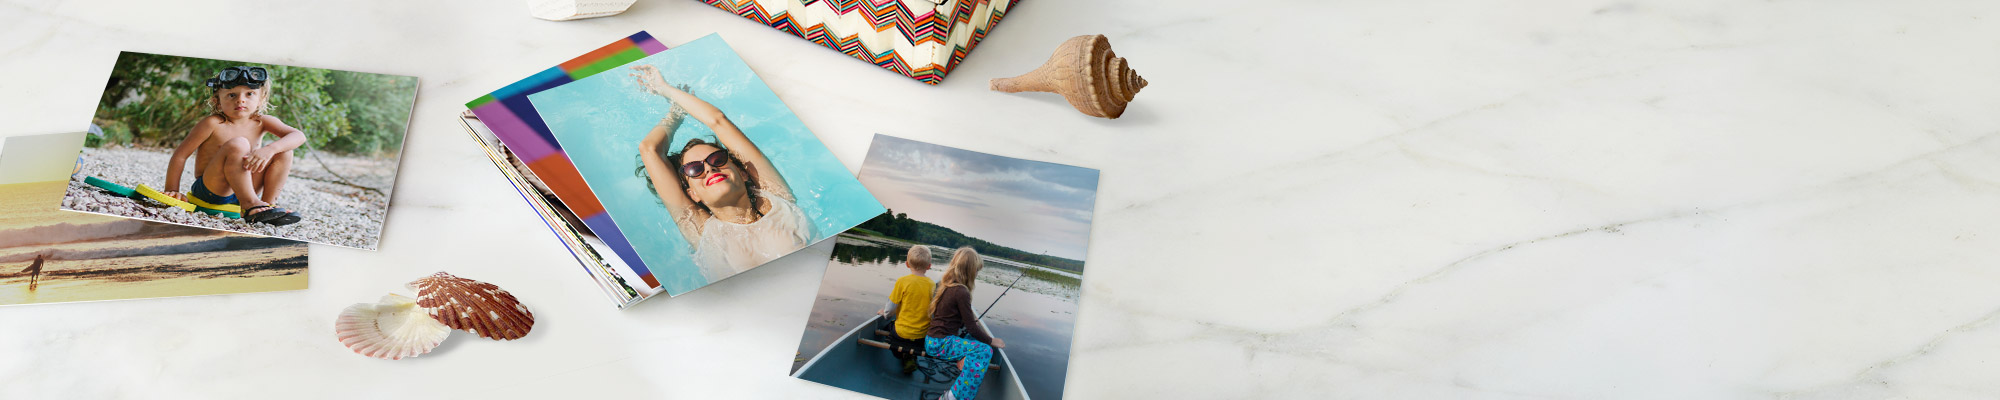 Photo Prints : Great moments you can hold onto, literally. Share them, save them, and always cherish them.